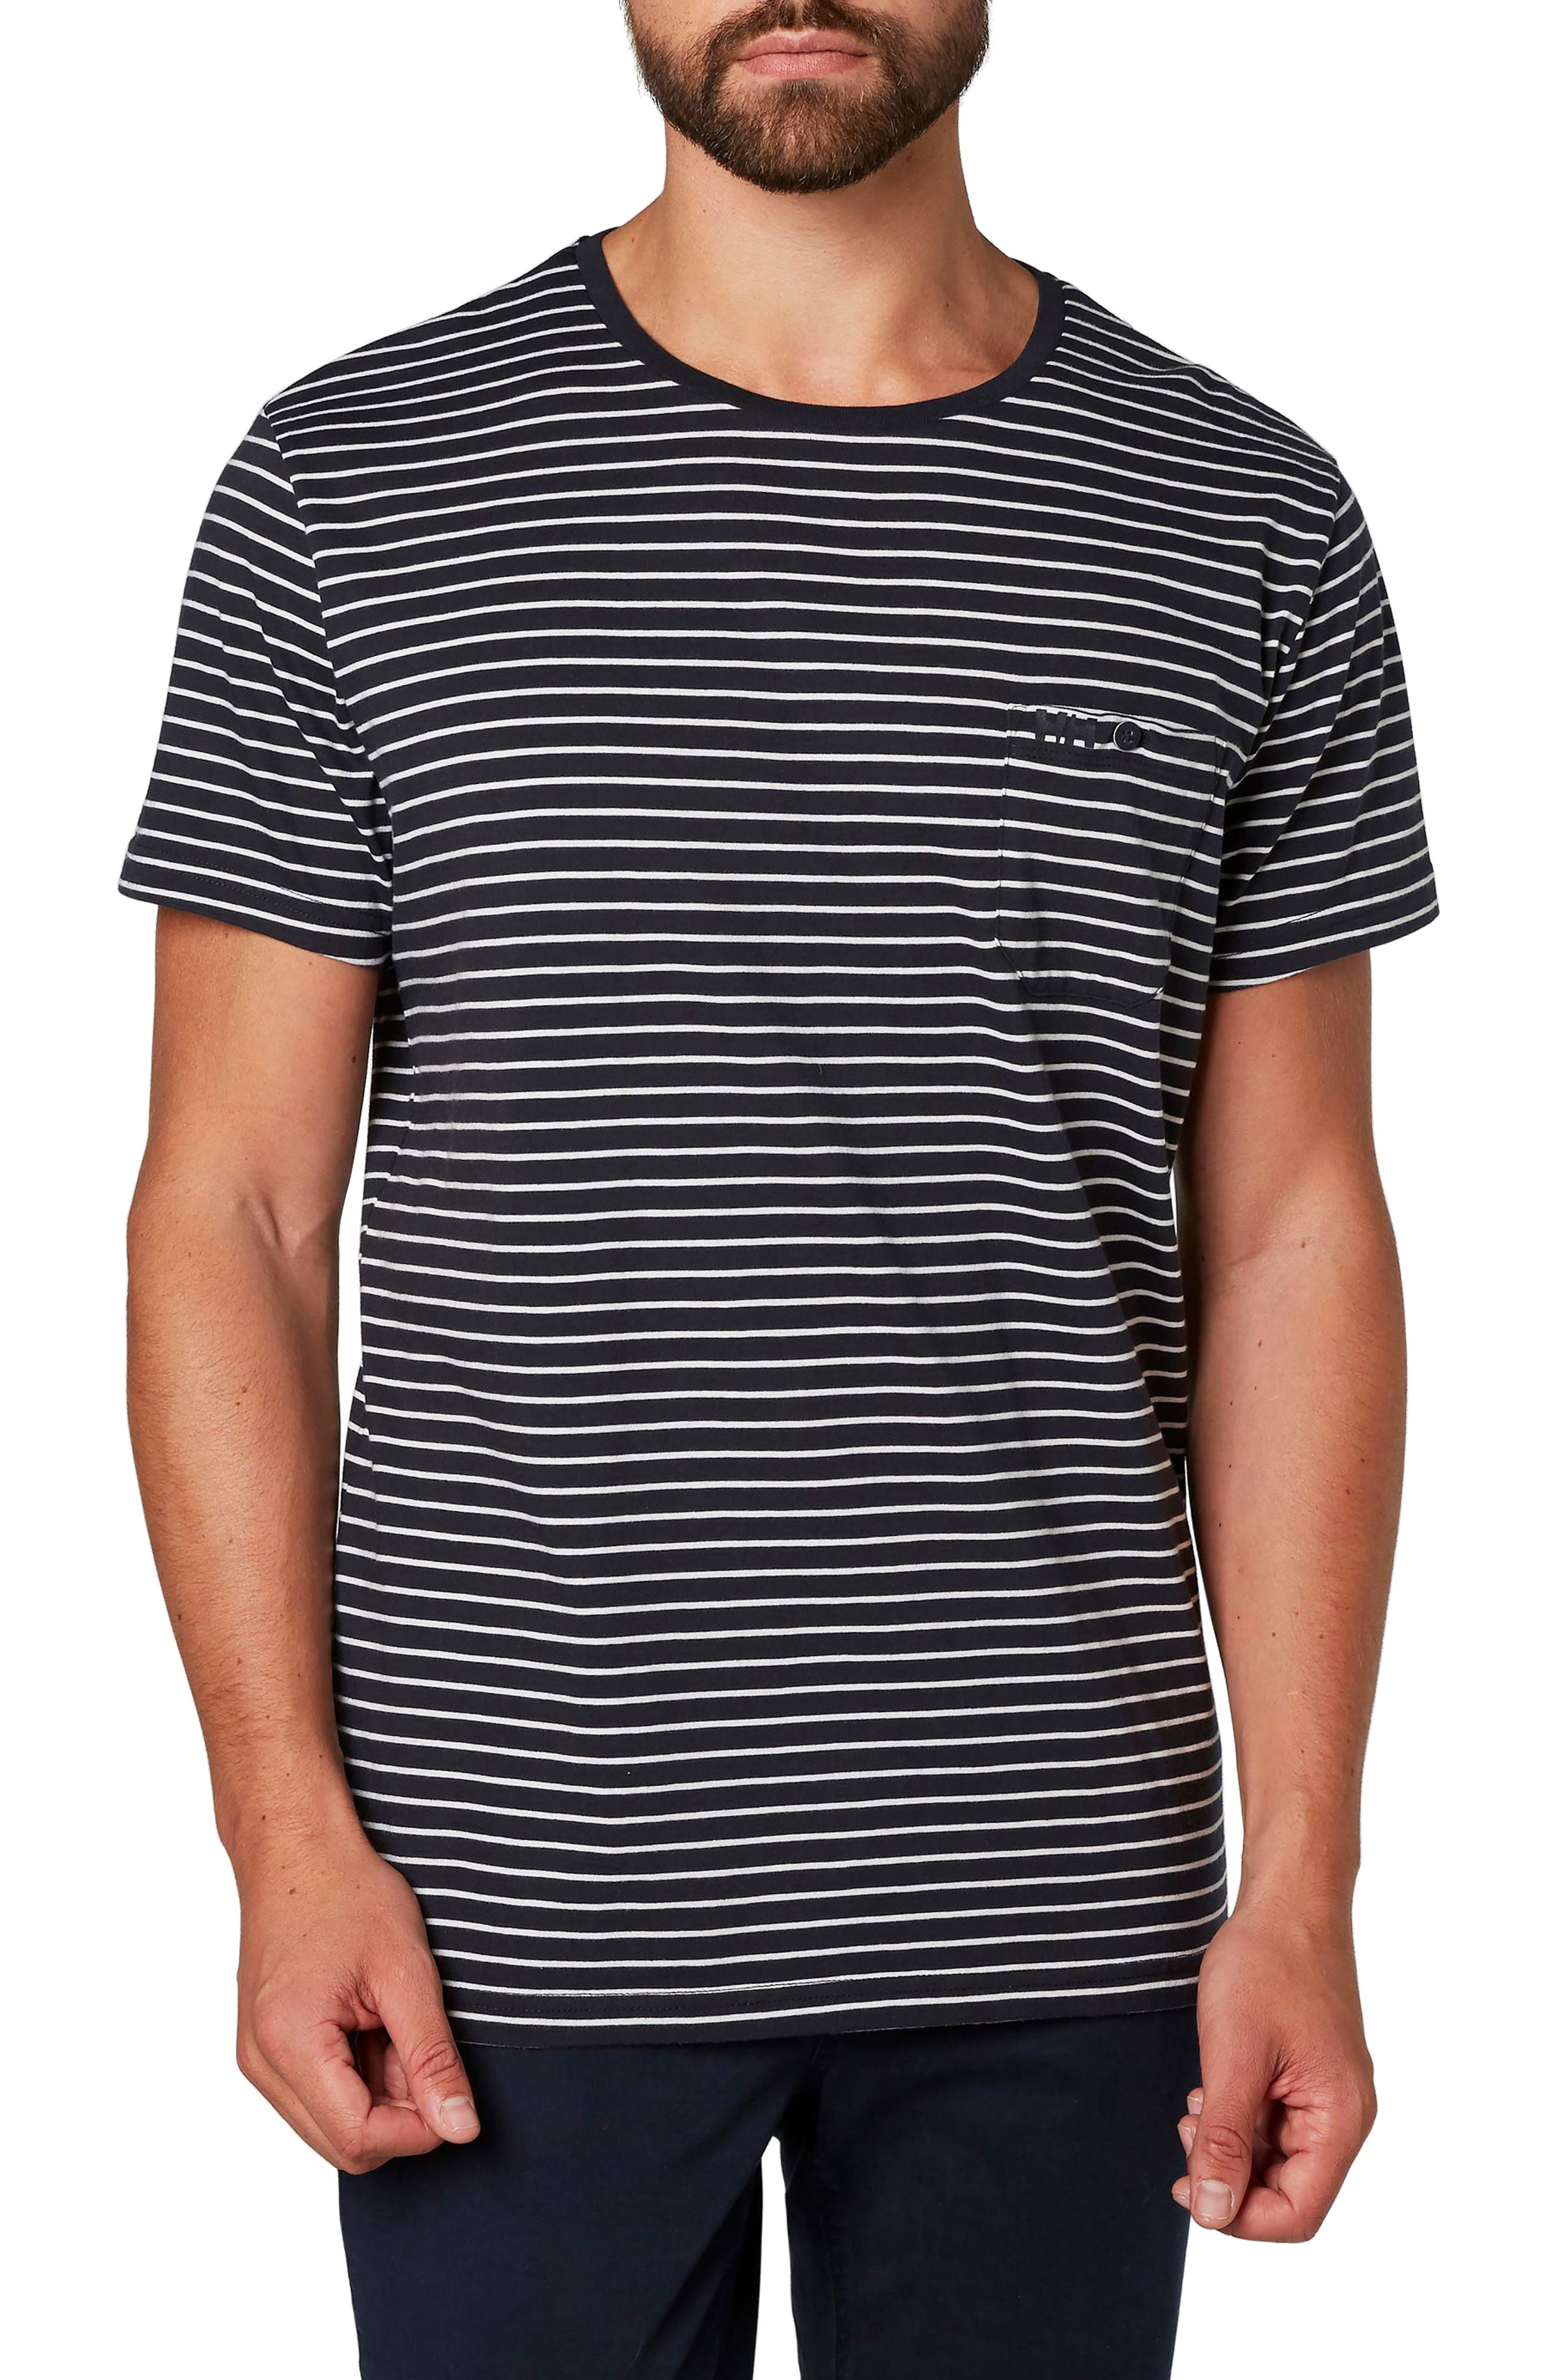 Fjord Cotton Blend T-Shirt,                         Main,                         color, Navy Micro Stripes